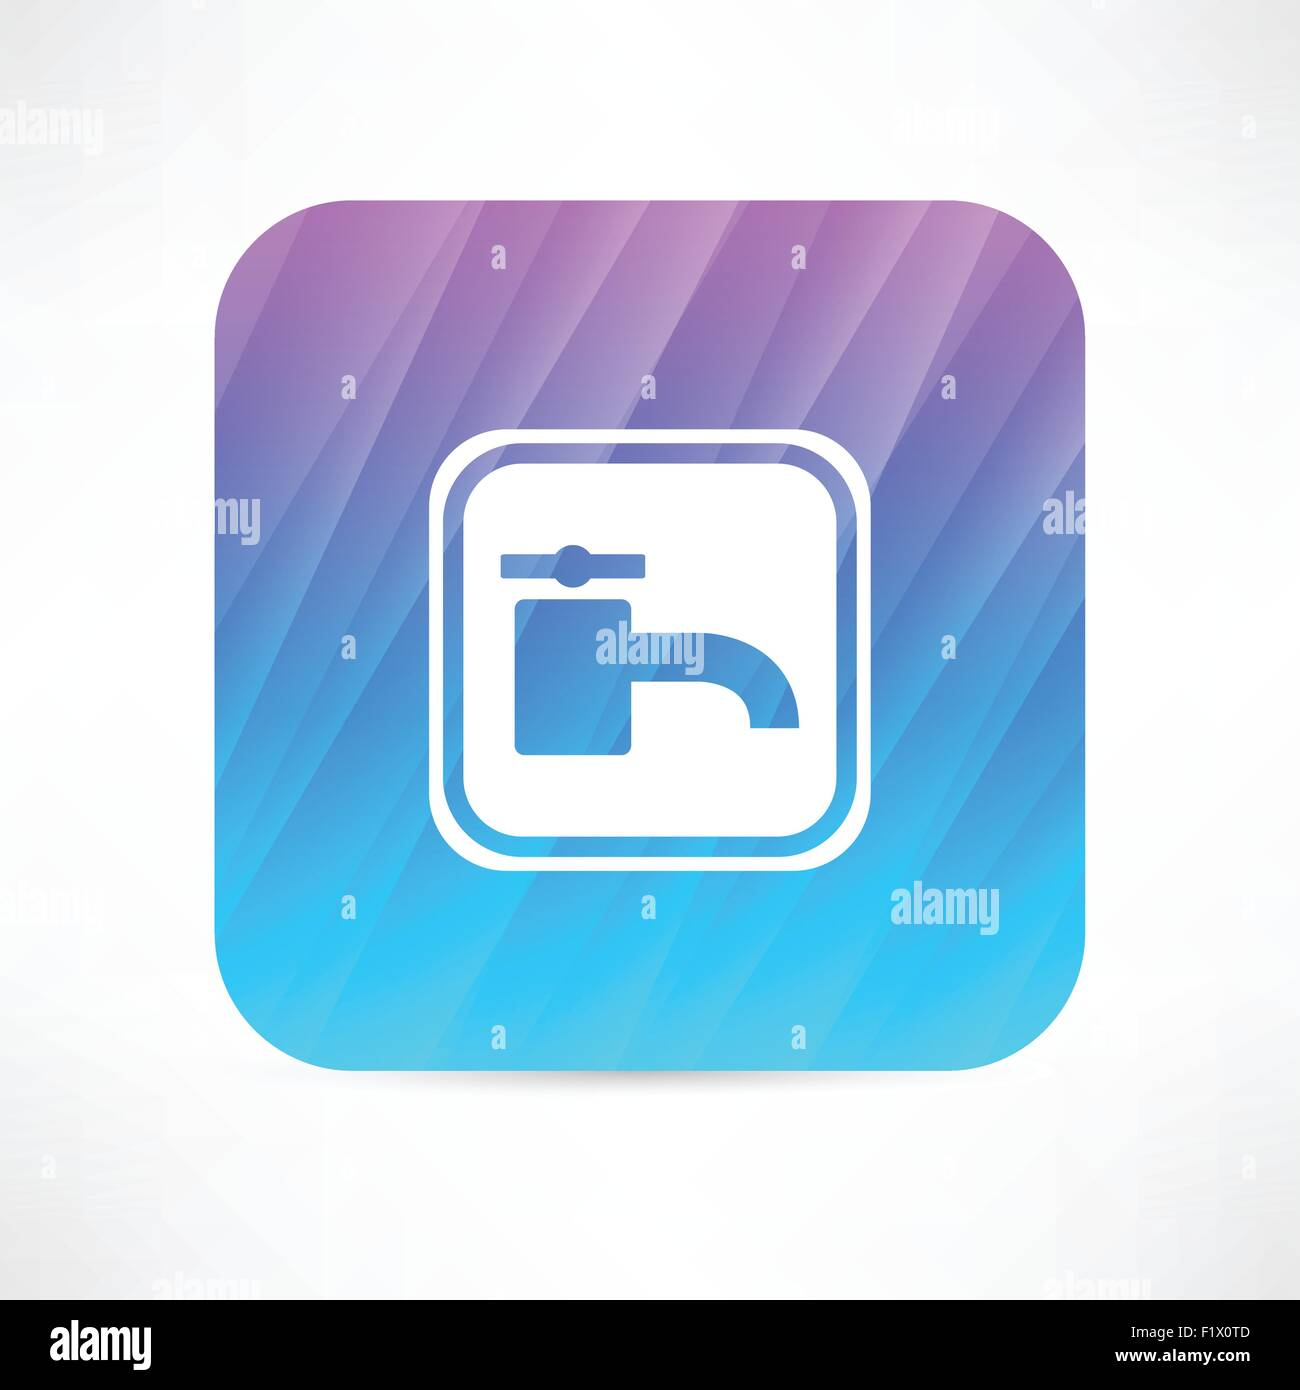 water tap icon - Stock Vector